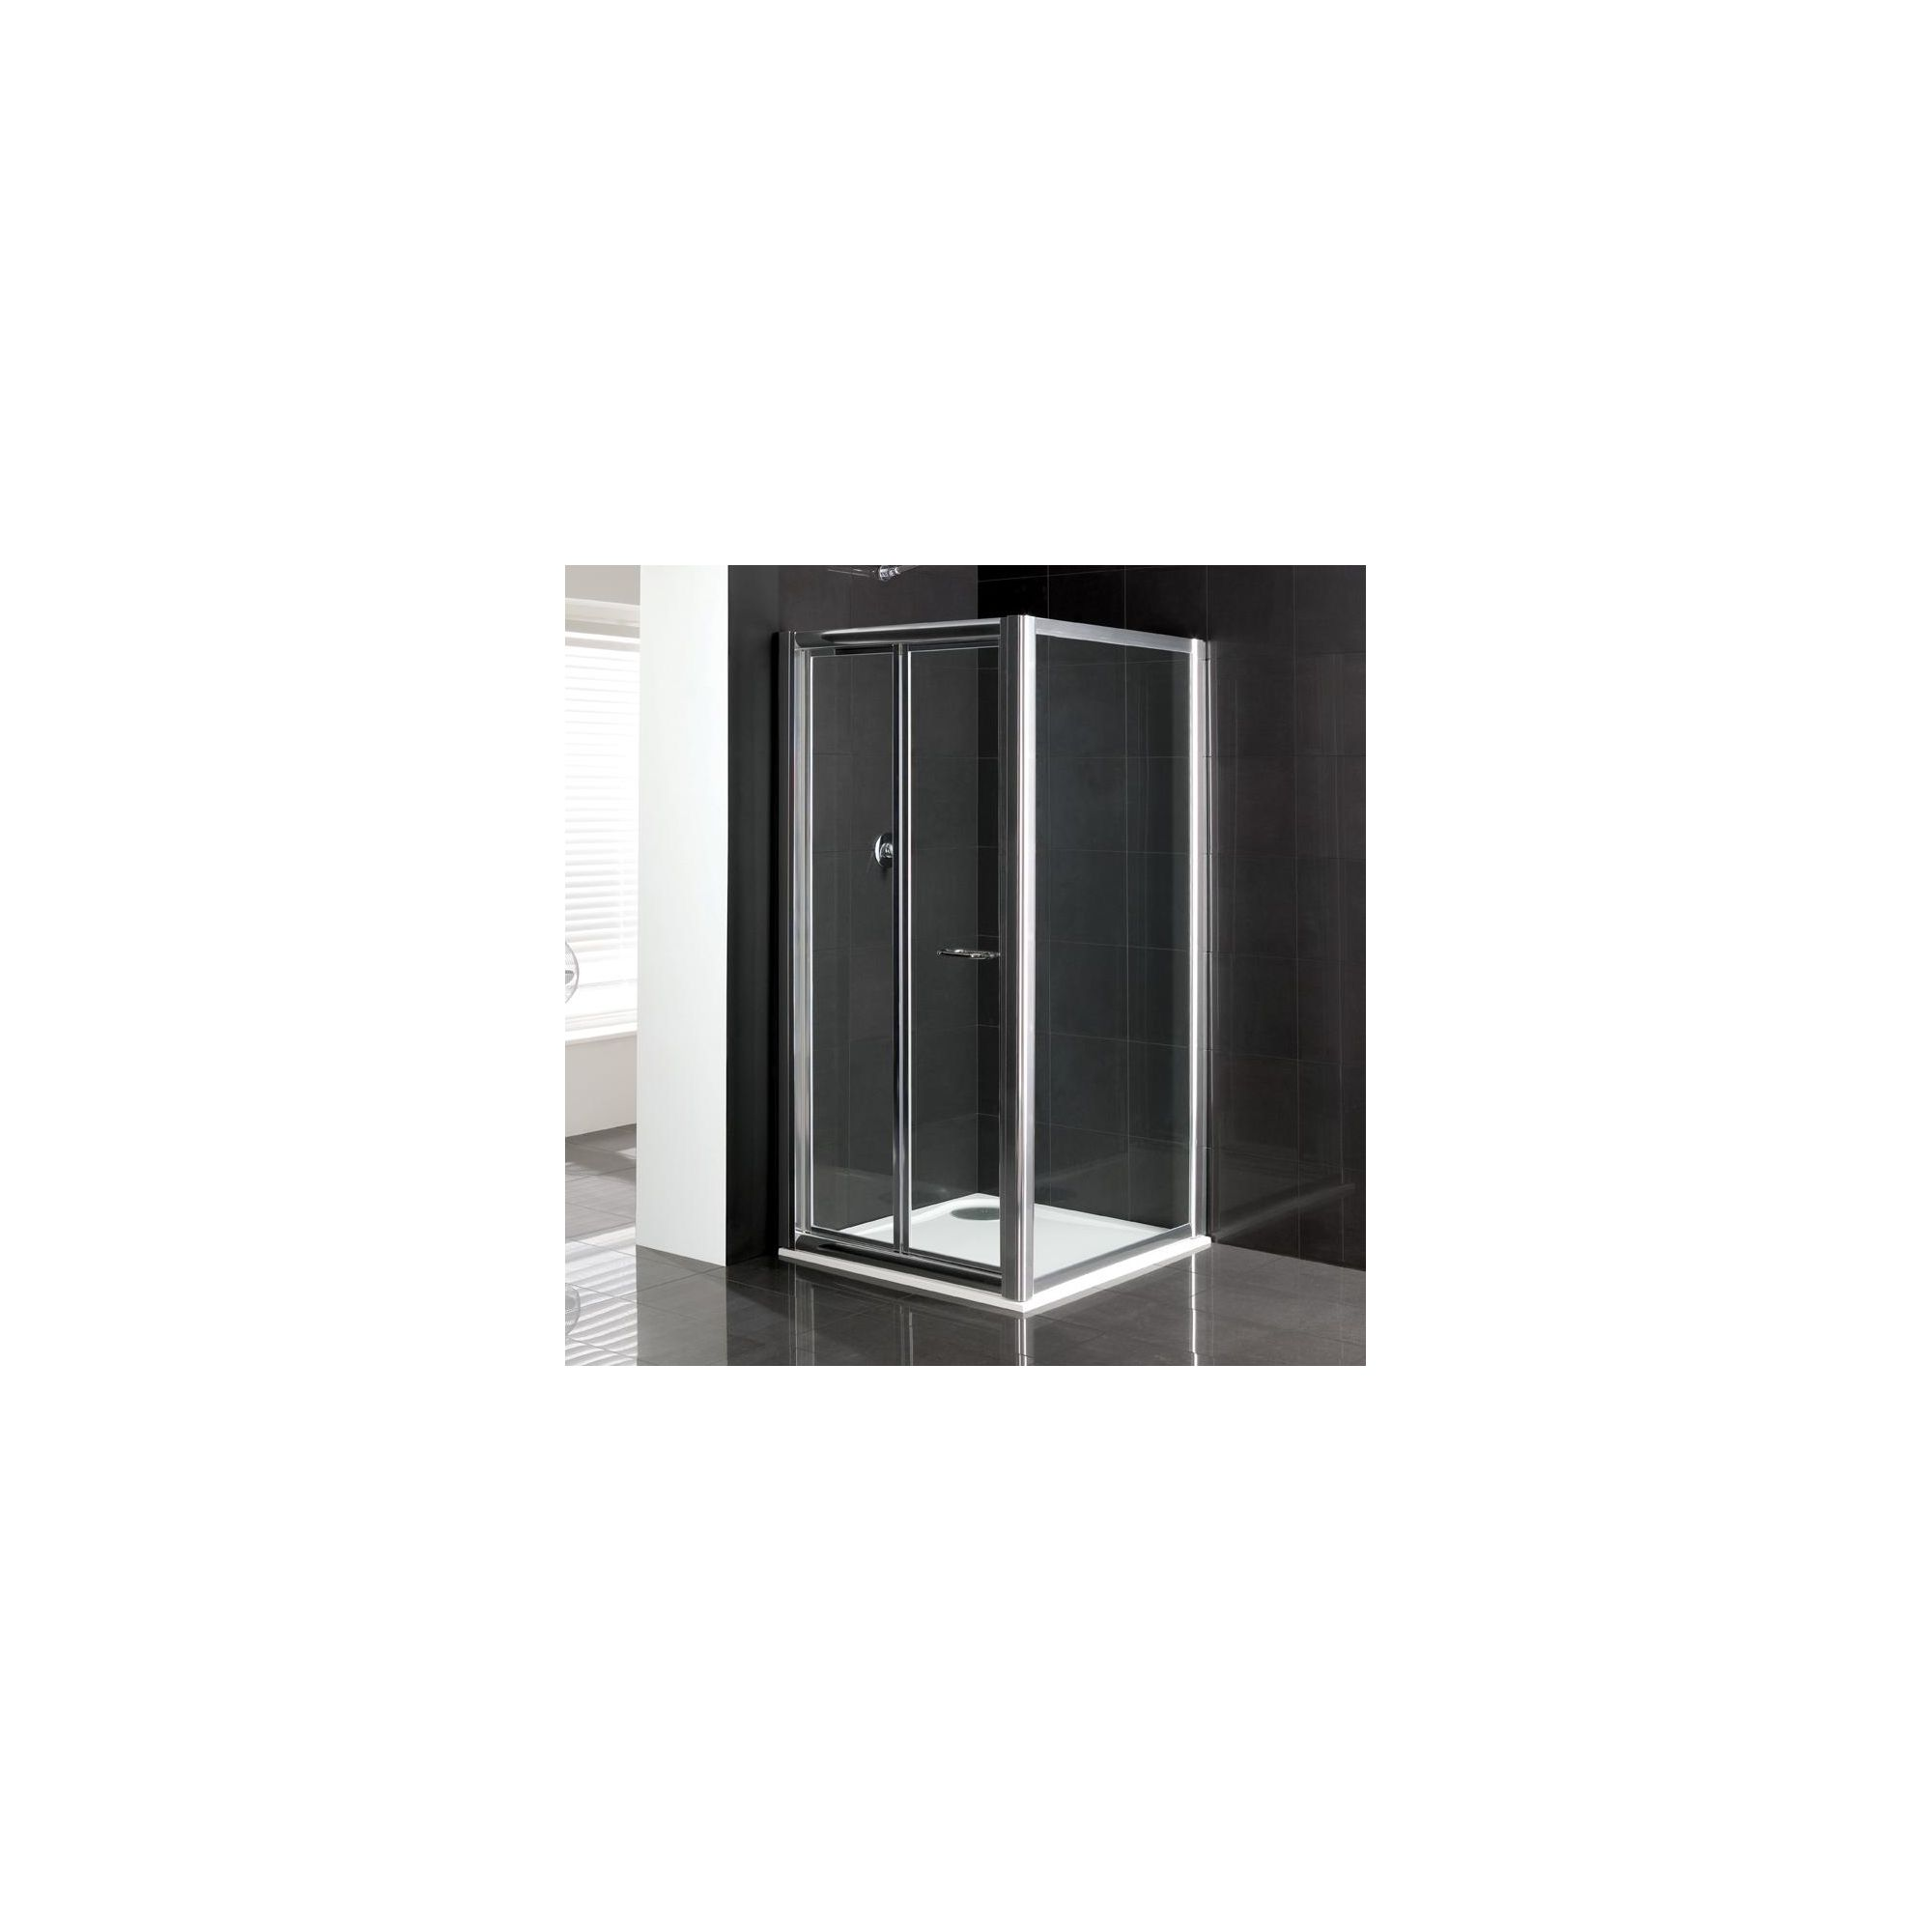 Duchy Elite Silver Bi-Fold Door Shower Enclosure with Towel Rail, 1000mm x 800mm, Standard Tray, 6mm Glass at Tesco Direct